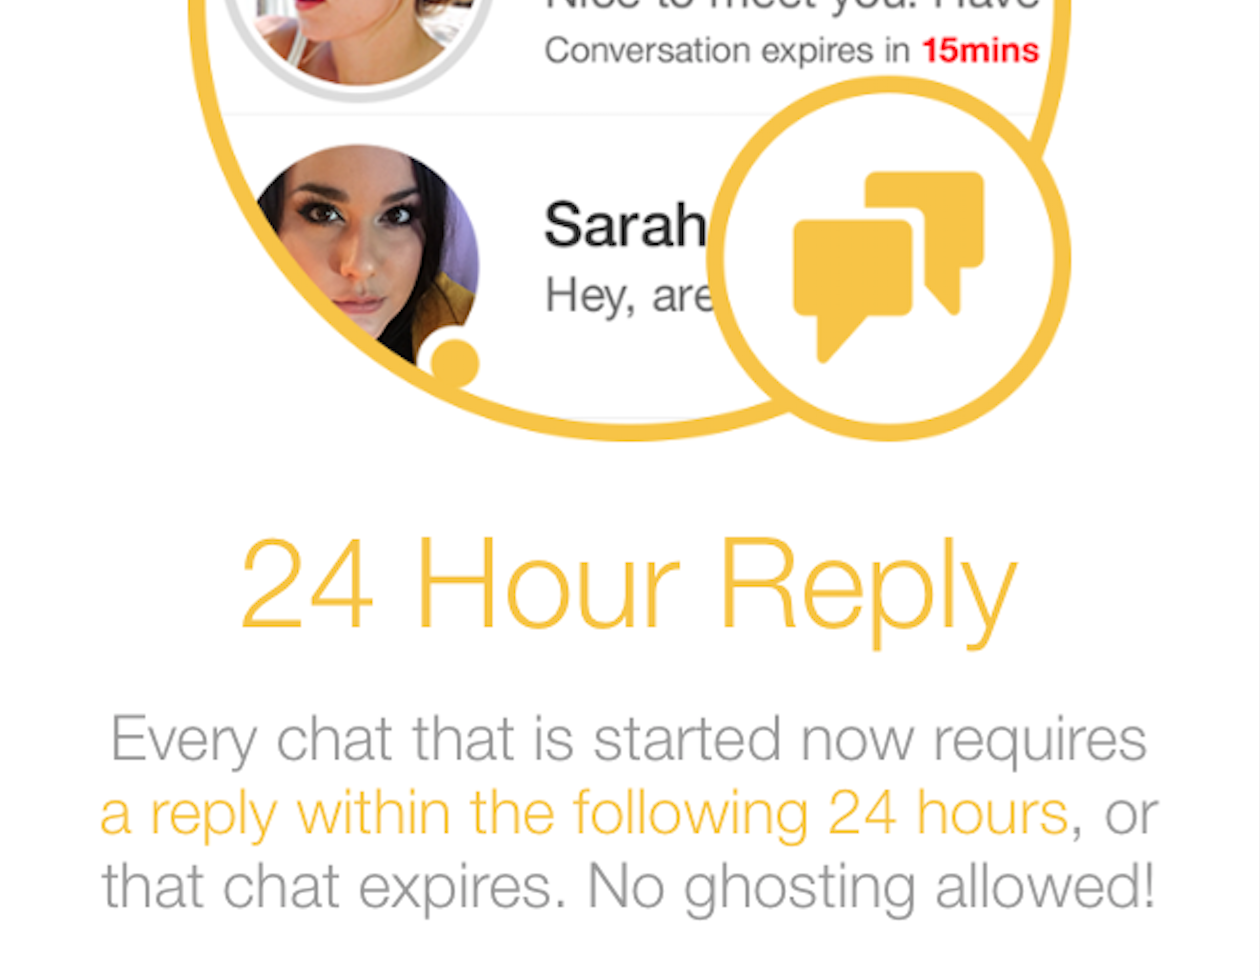 Bumble Adds 24 Hour Time Limit To Replies, To Curb 'Ghosting